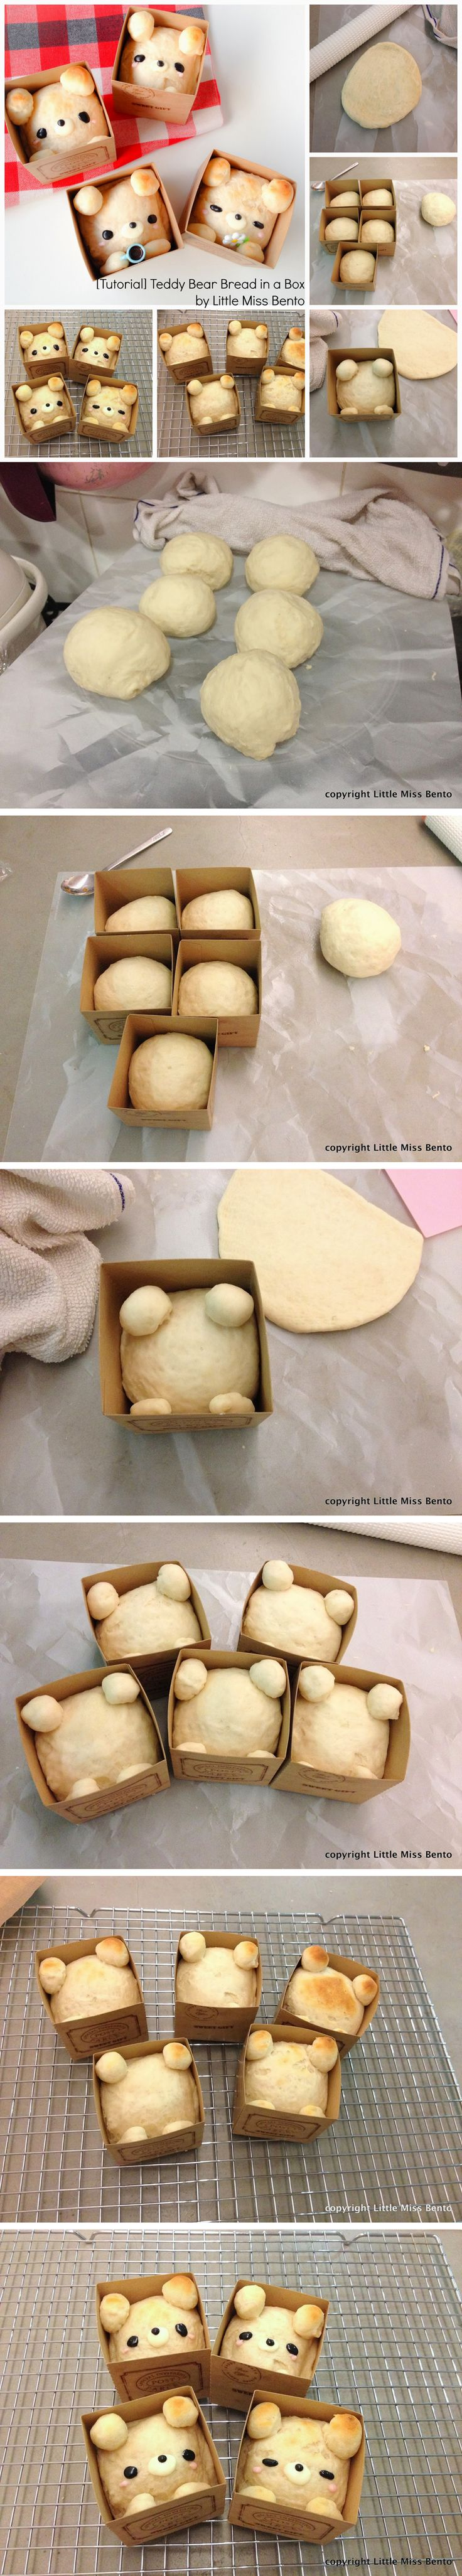 Comment réaliser de petits pains en forme de petits ours - Teddy in a Box Bread Recipe